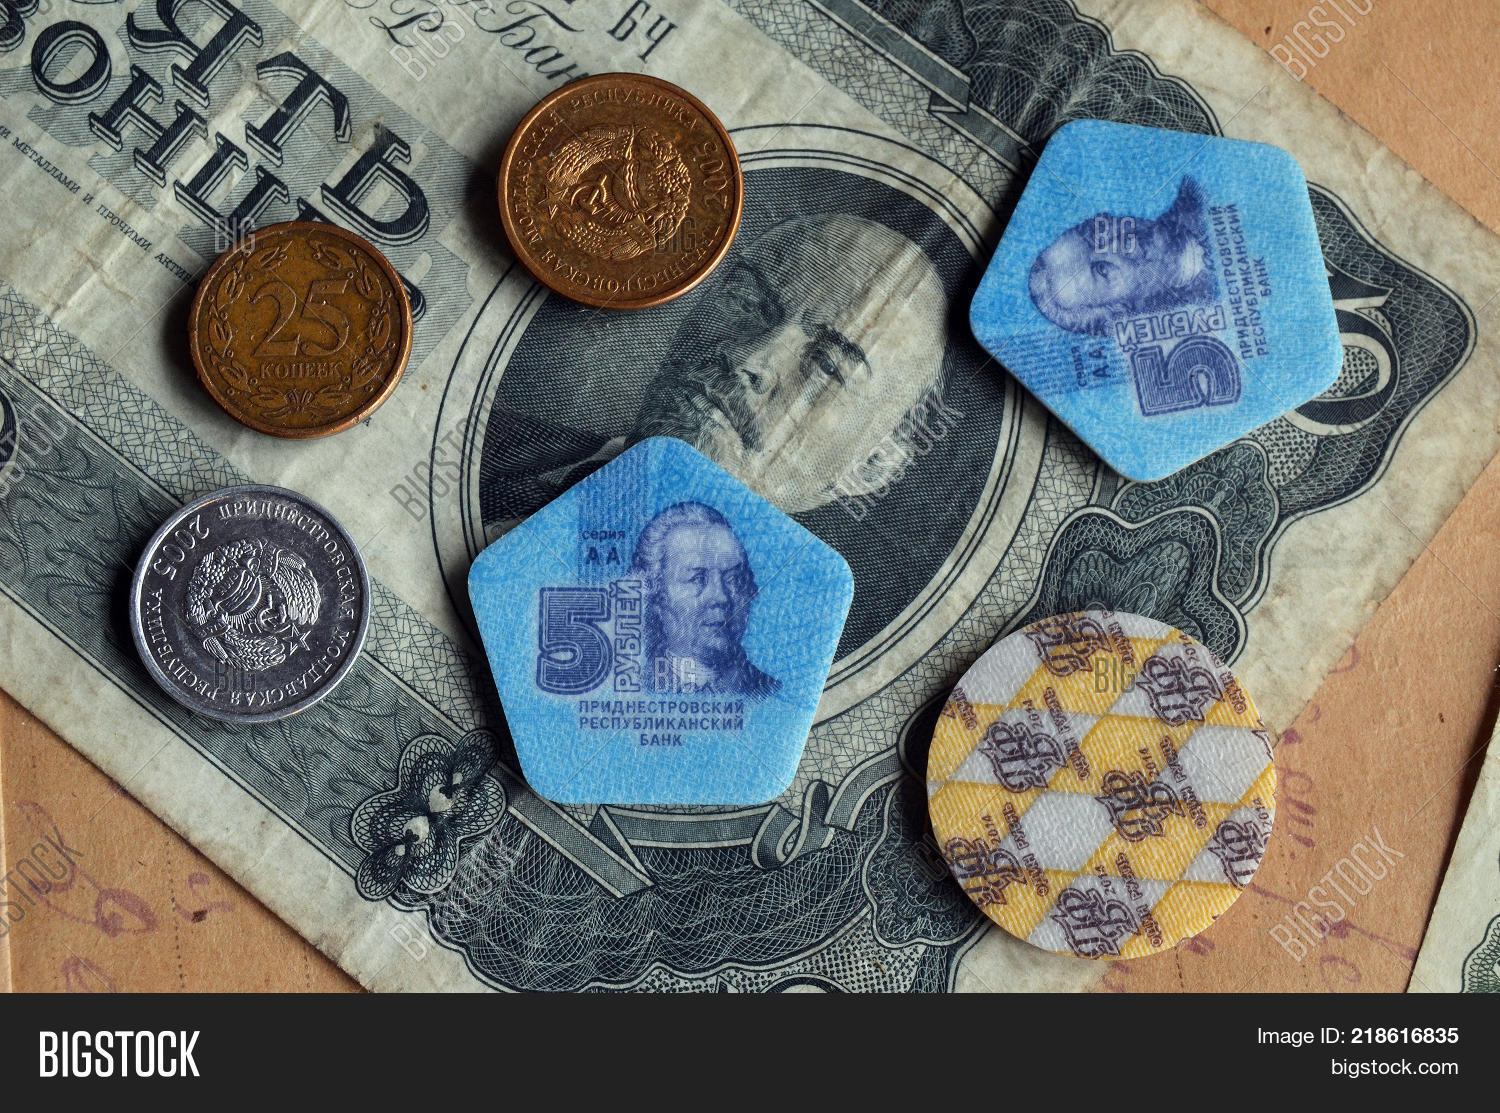 Banknotes and coins of Transnistria. Interesting facts about the currency of the PMR 71